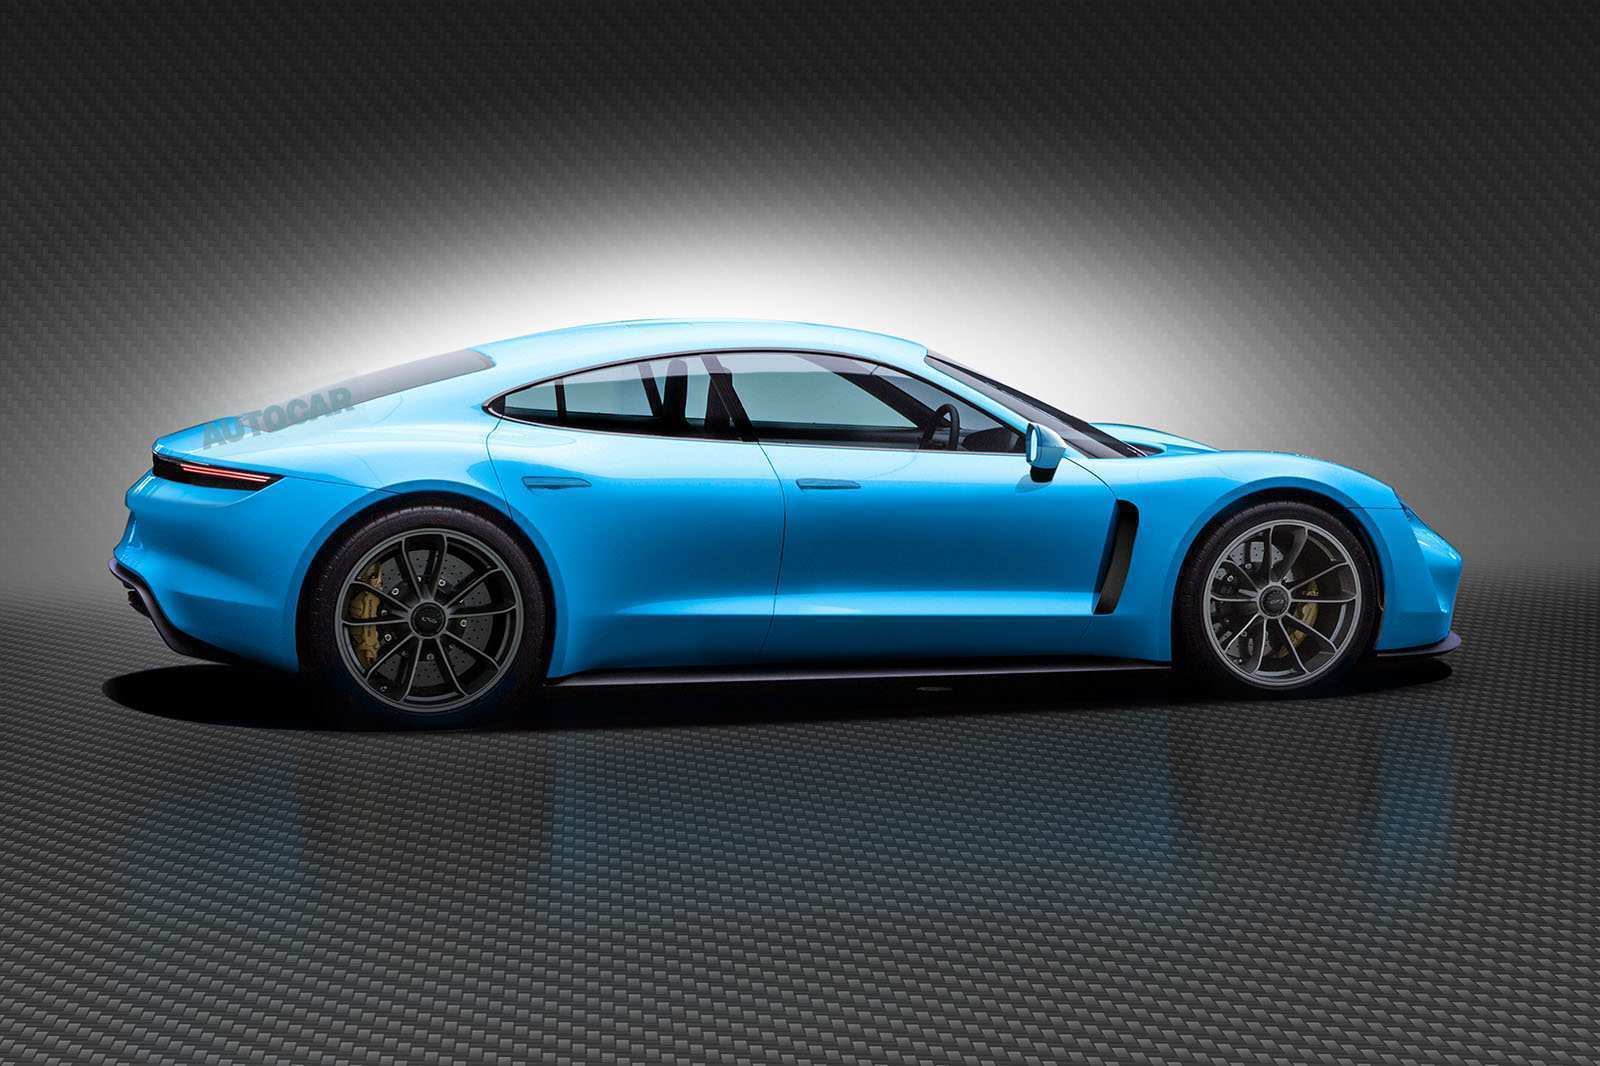 76 Gallery of 2020 Porsche Mission E Photos with 2020 Porsche Mission E